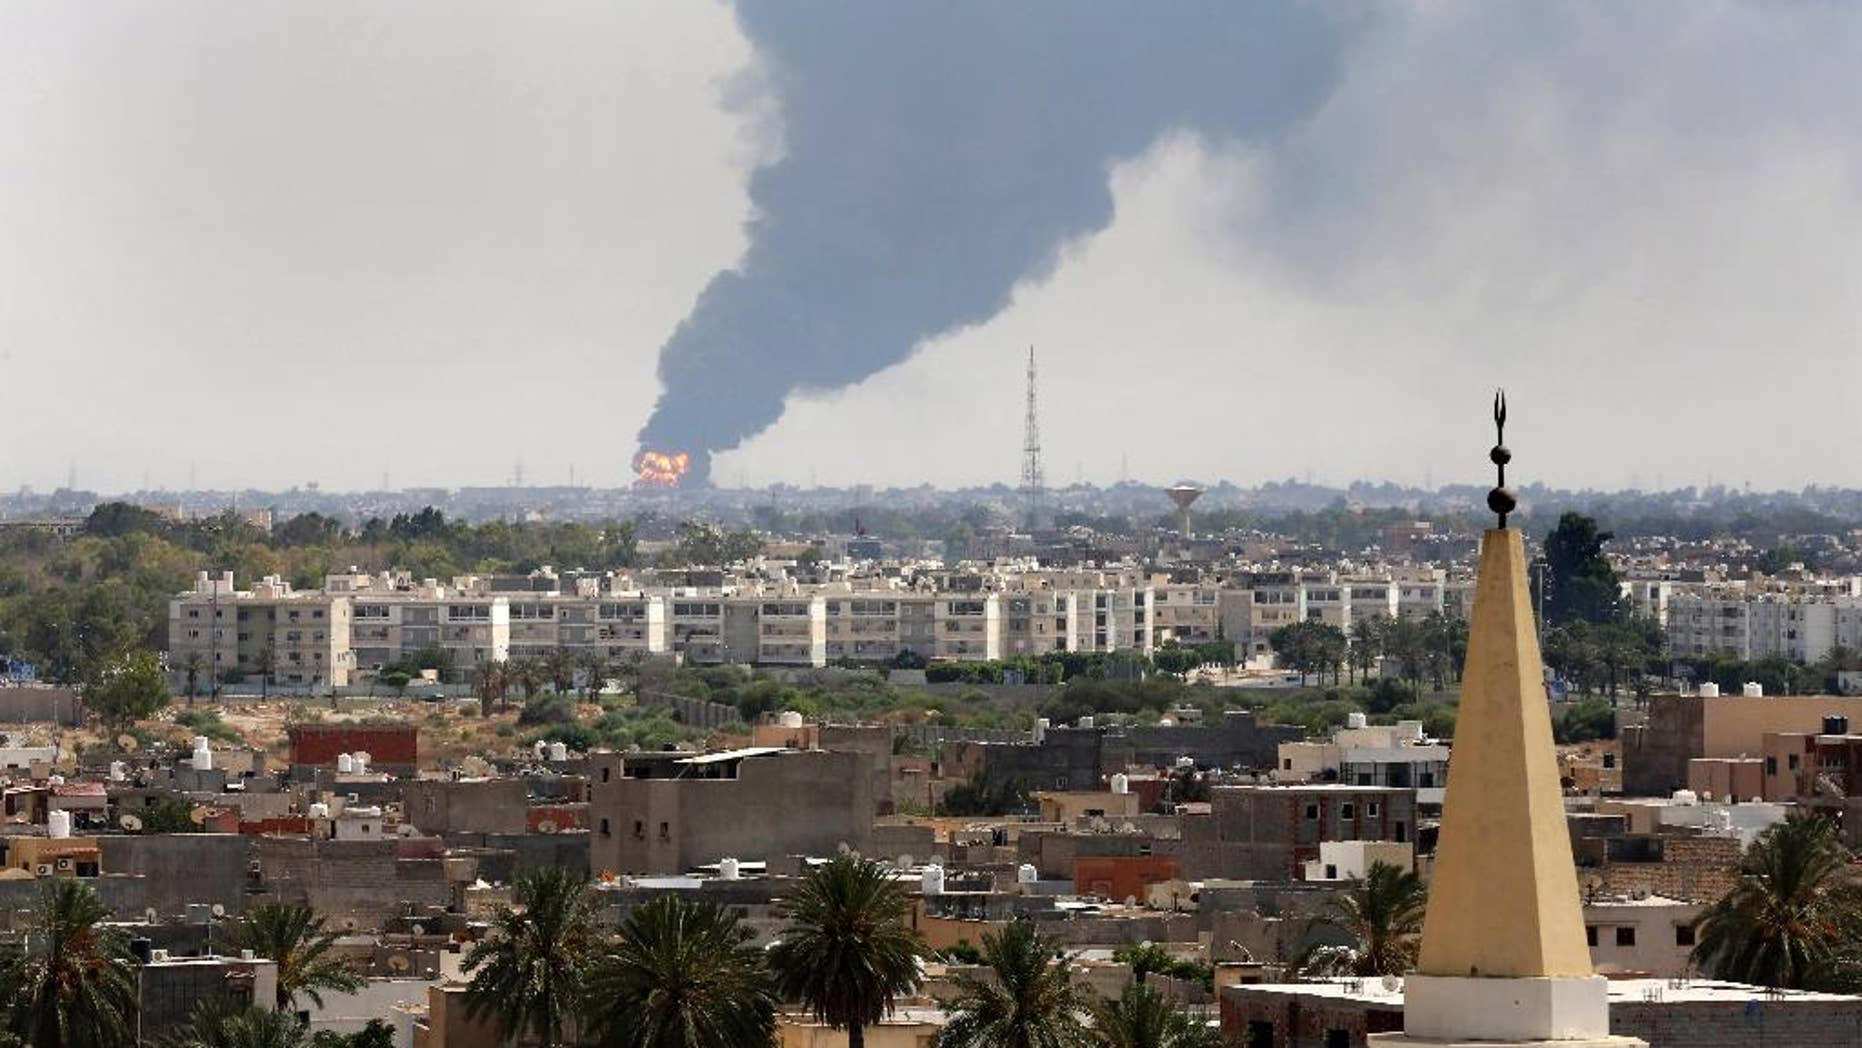 """Black smoke billows over the skyline as a fire at the oil depot for the airport rages out of control after being struck in the crossfire of warring militias battling for control of the airfield, in Tripoli, Libya Monday, July 28, 2014. The latest violence to plague the country has so far killed scores of people and wounded hundreds as foreigners flee the chaos. Libya's interim government said in a statement that the fire could trigger a """"humanitarian and environmental disaster"""" in Tripoli, appealing for """"international help"""" to extinguish the inferno. (AP Photo/Mohammed Ben Khalifa)"""